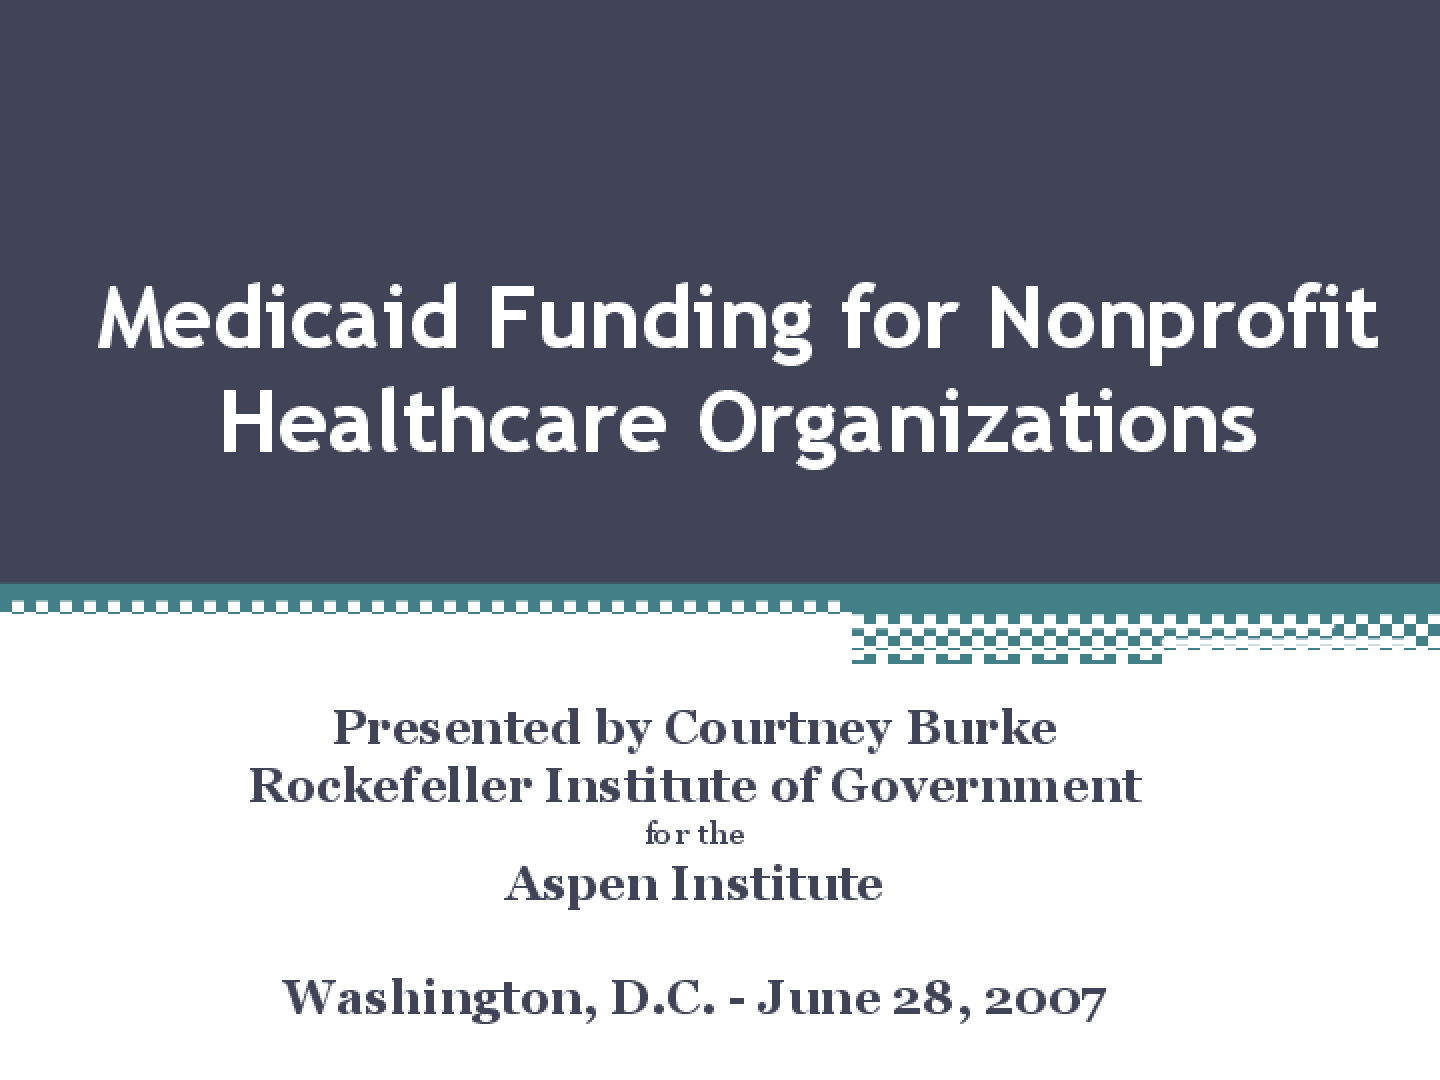 Medicaid Funding for Nonprofit Healthcare Organizations